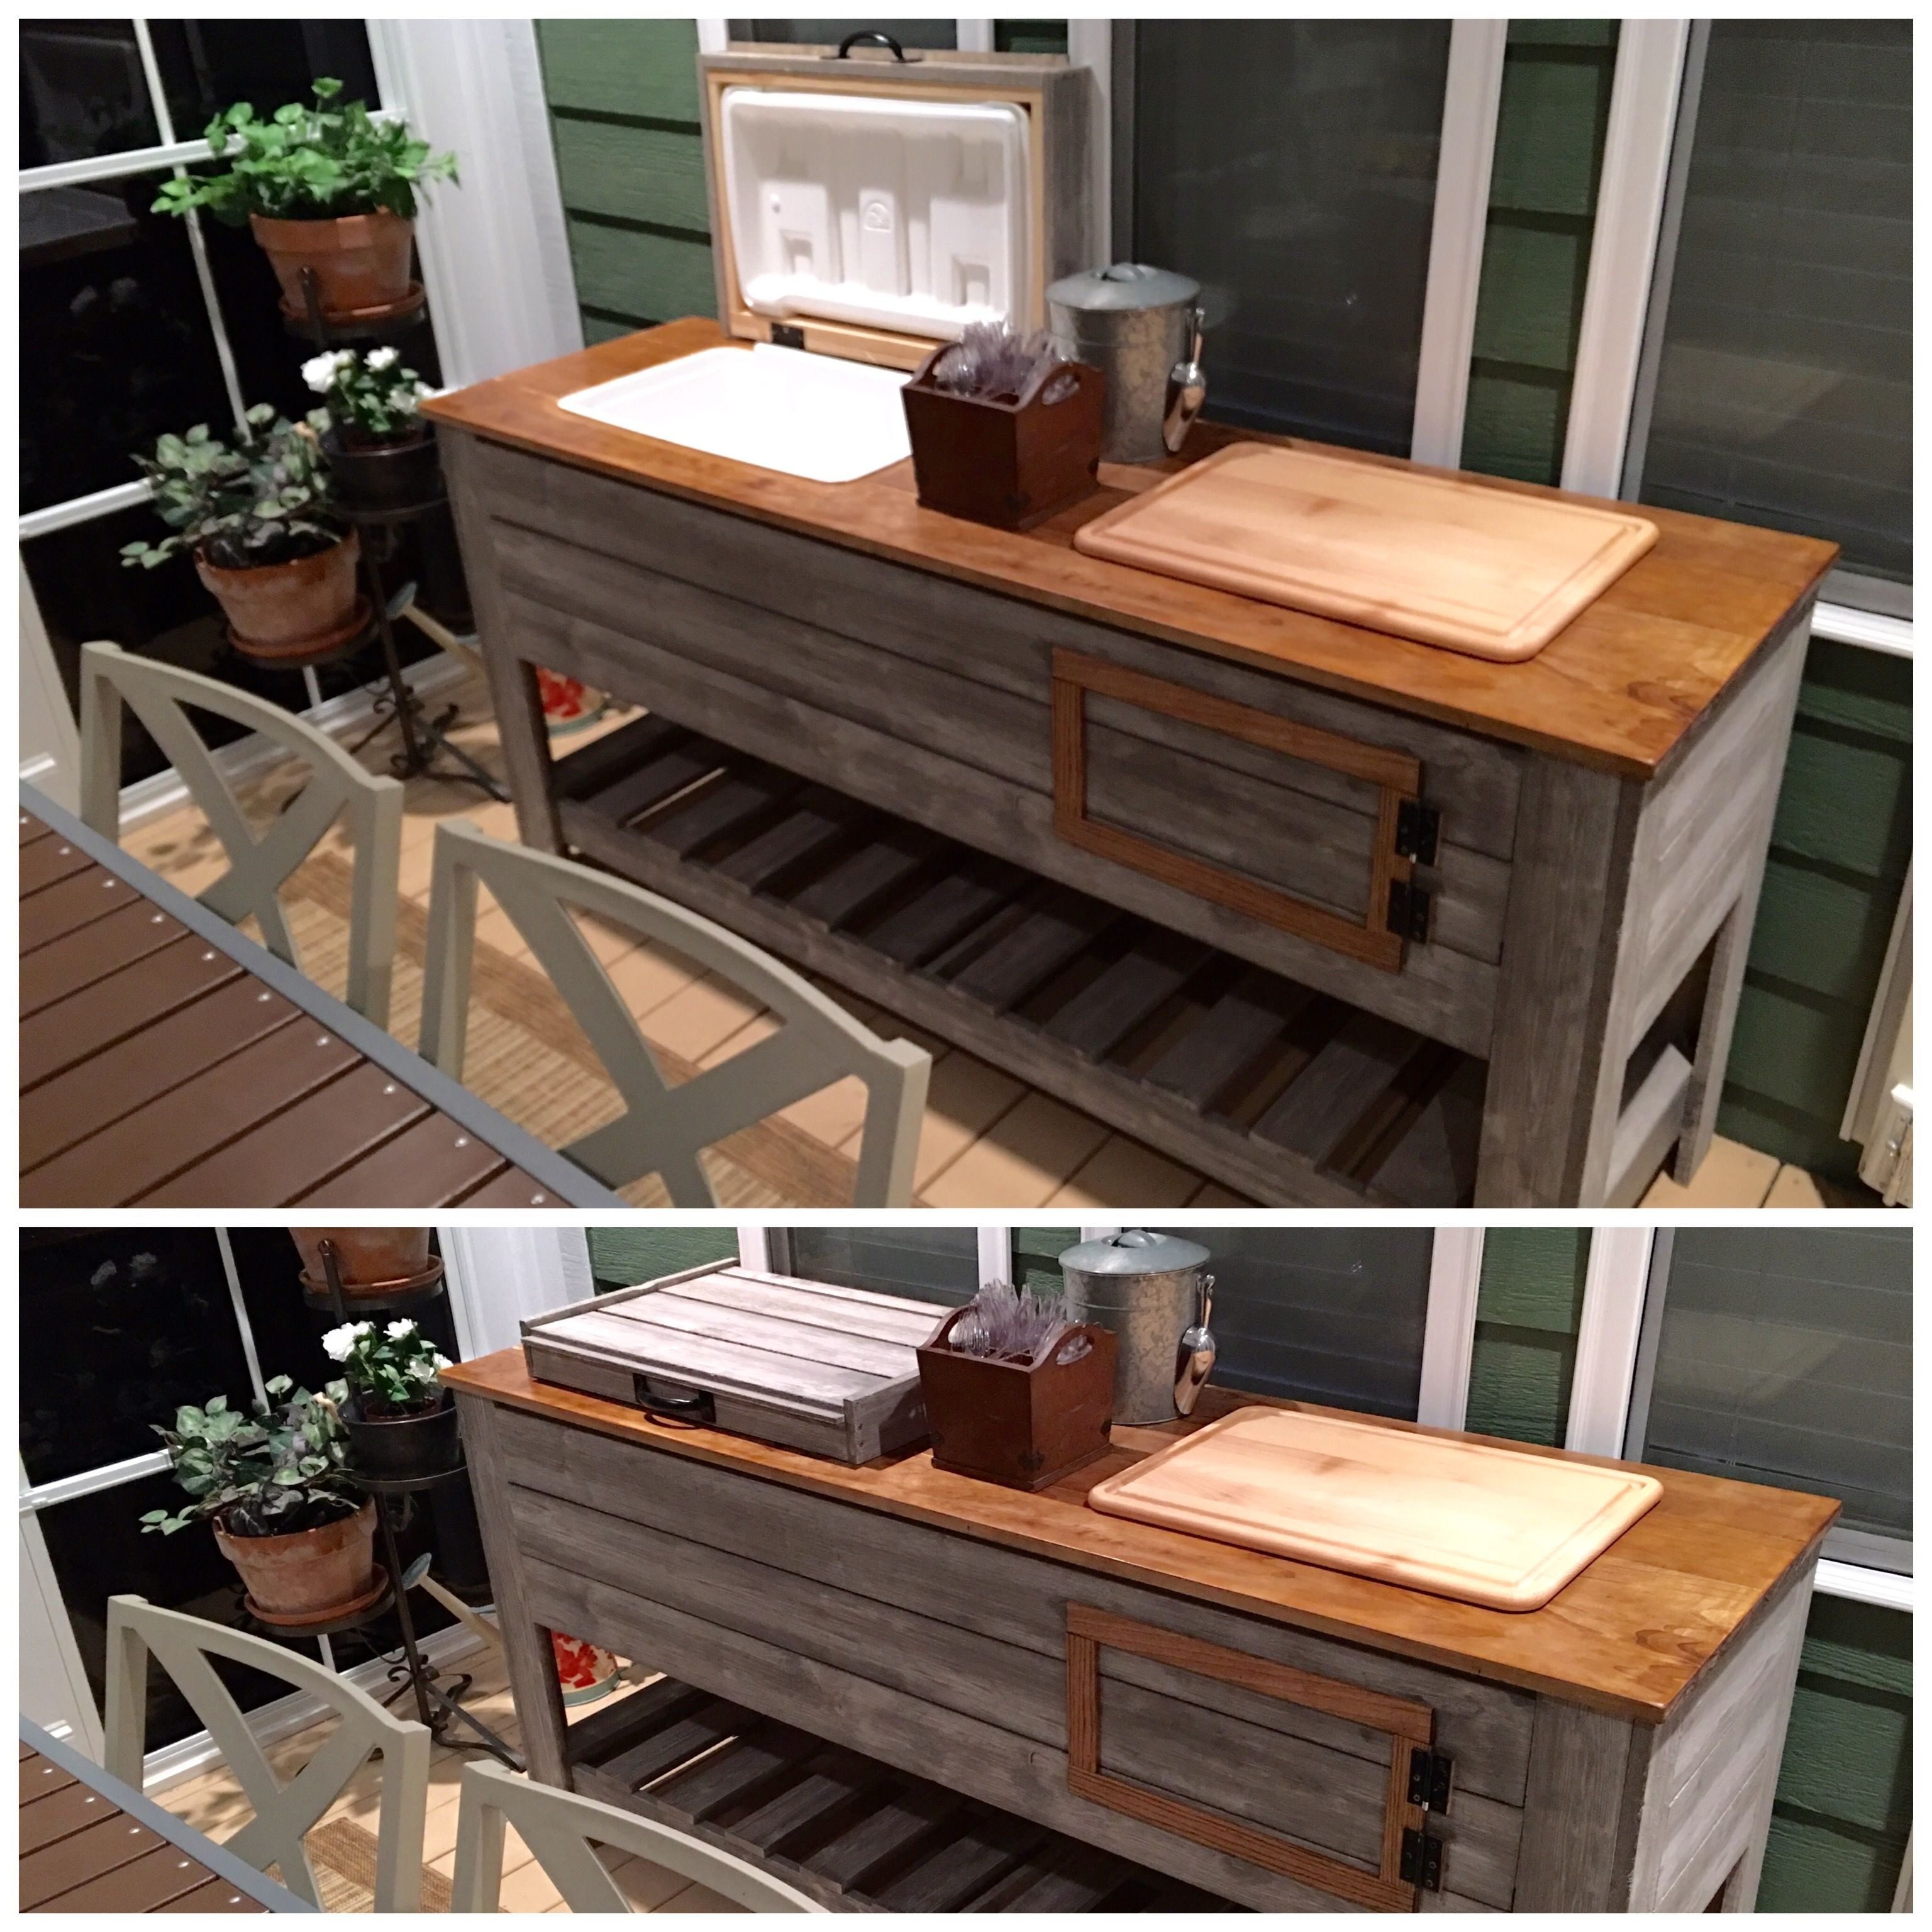 Patio Serving Table With Built In Cooler. It Still Needs Some Iron Jewelry  To